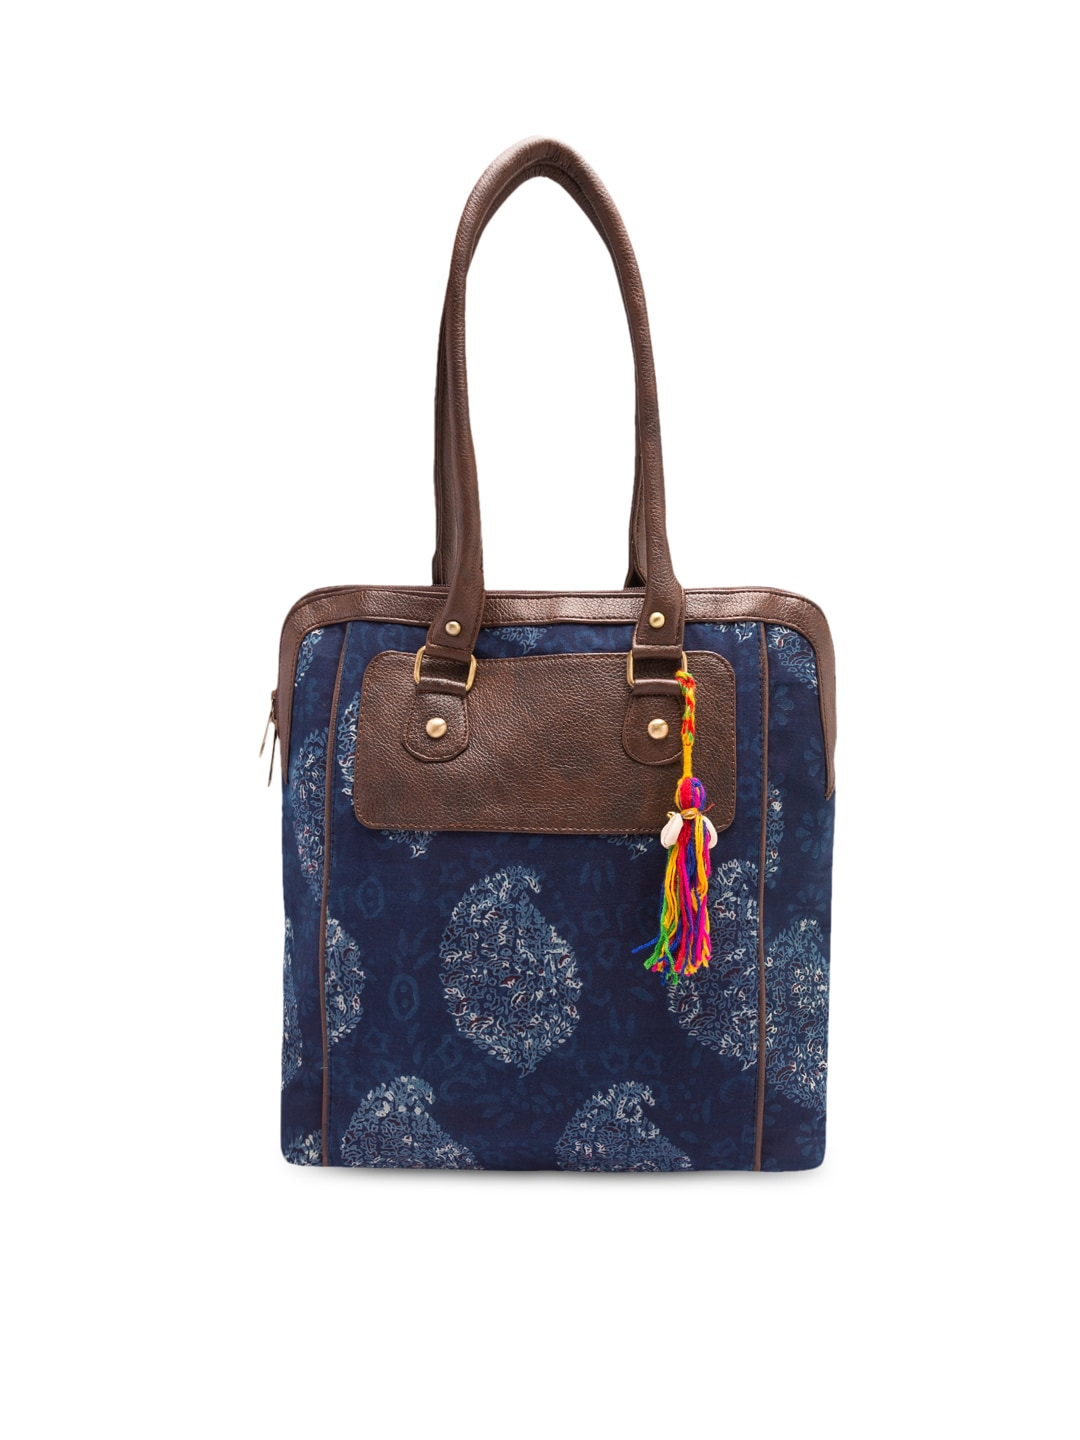 73a0d11523 Canvas Tote Bags - Buy Canvas Tote Bags Online in India